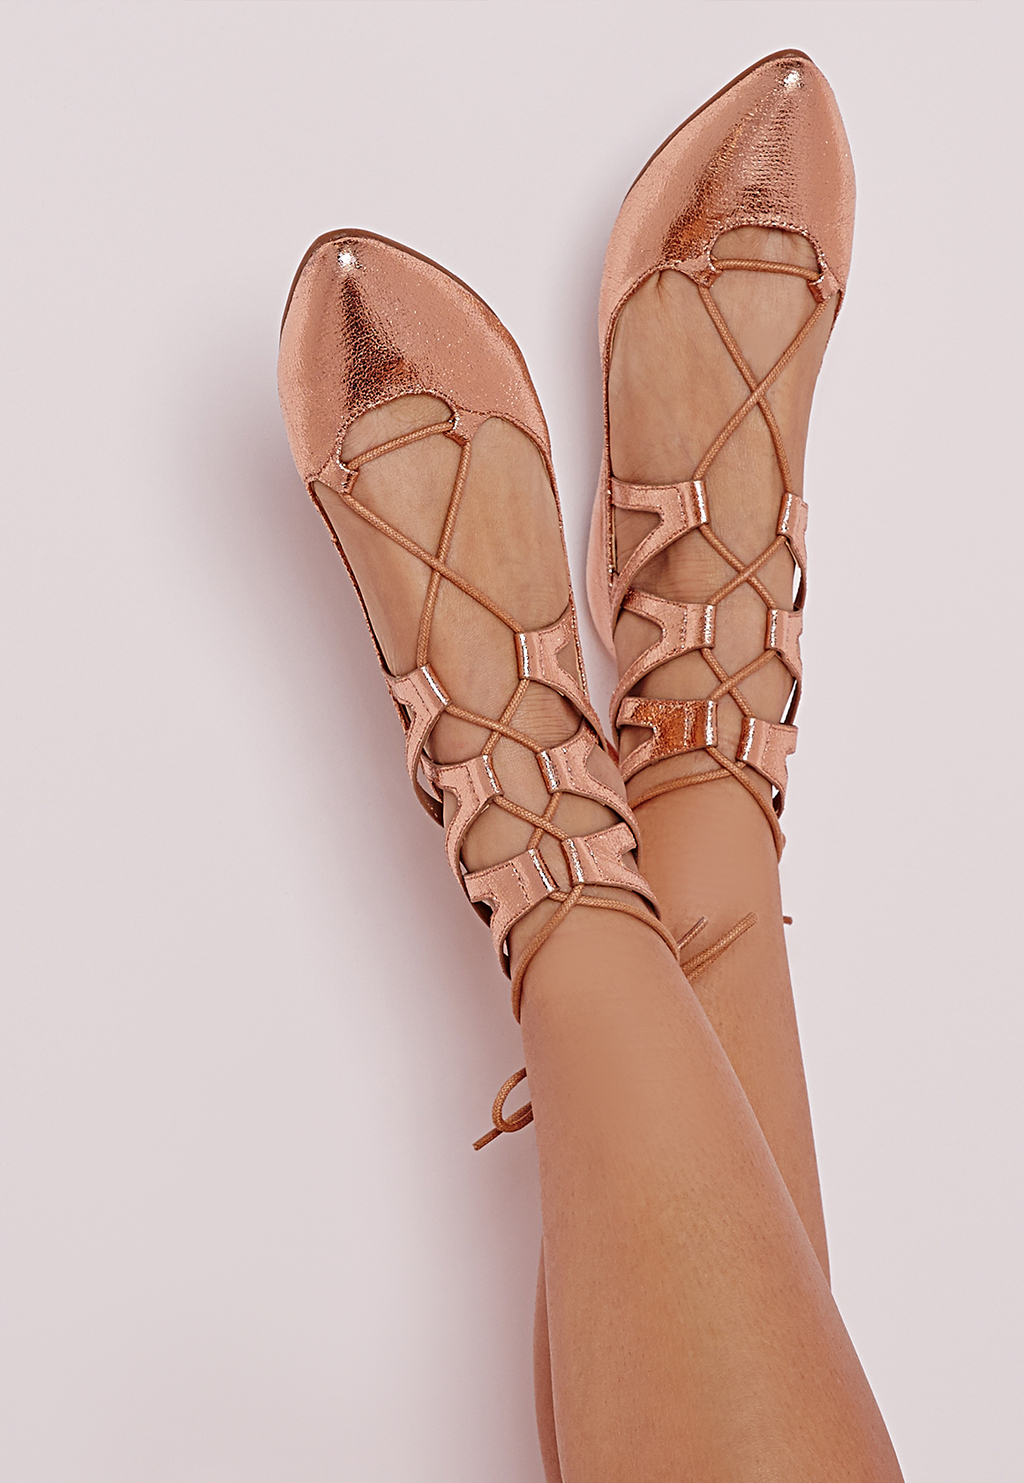 Lace Up Pumps Rose Gold, Red - predominant colour: gold; occasions: casual, creative work; material: faux leather; heel height: flat; ankle detail: ankle tie; toe: pointed toe; style: ballerinas / pumps; finish: patent; pattern: plain; season: s/s 2016; wardrobe: basic